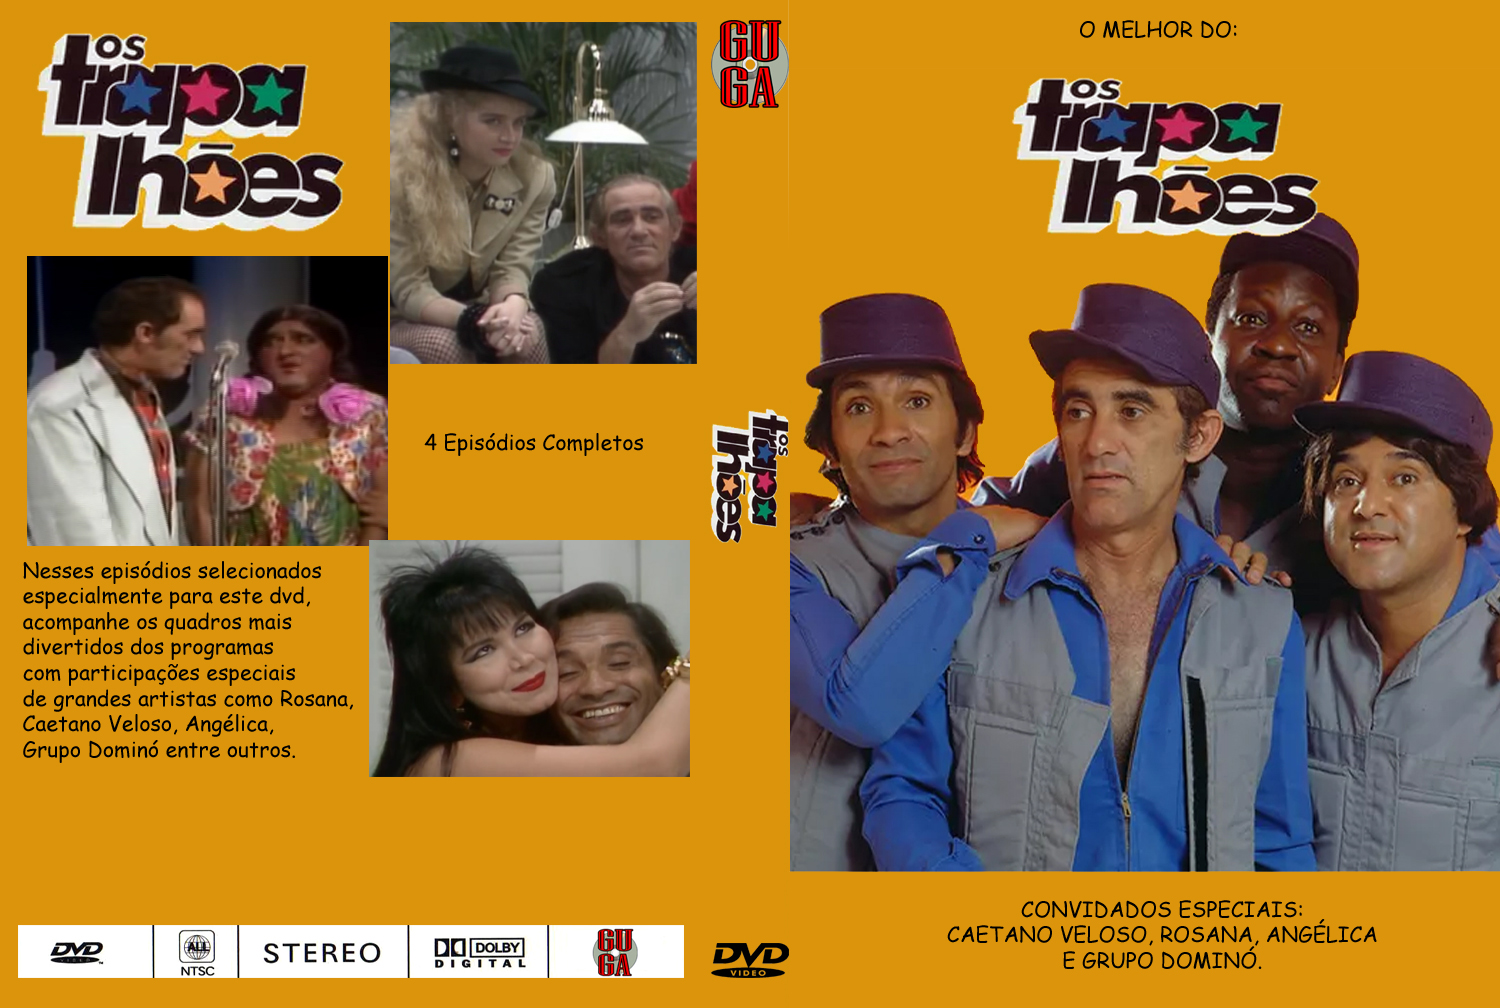 o dvd dos trapalhoes